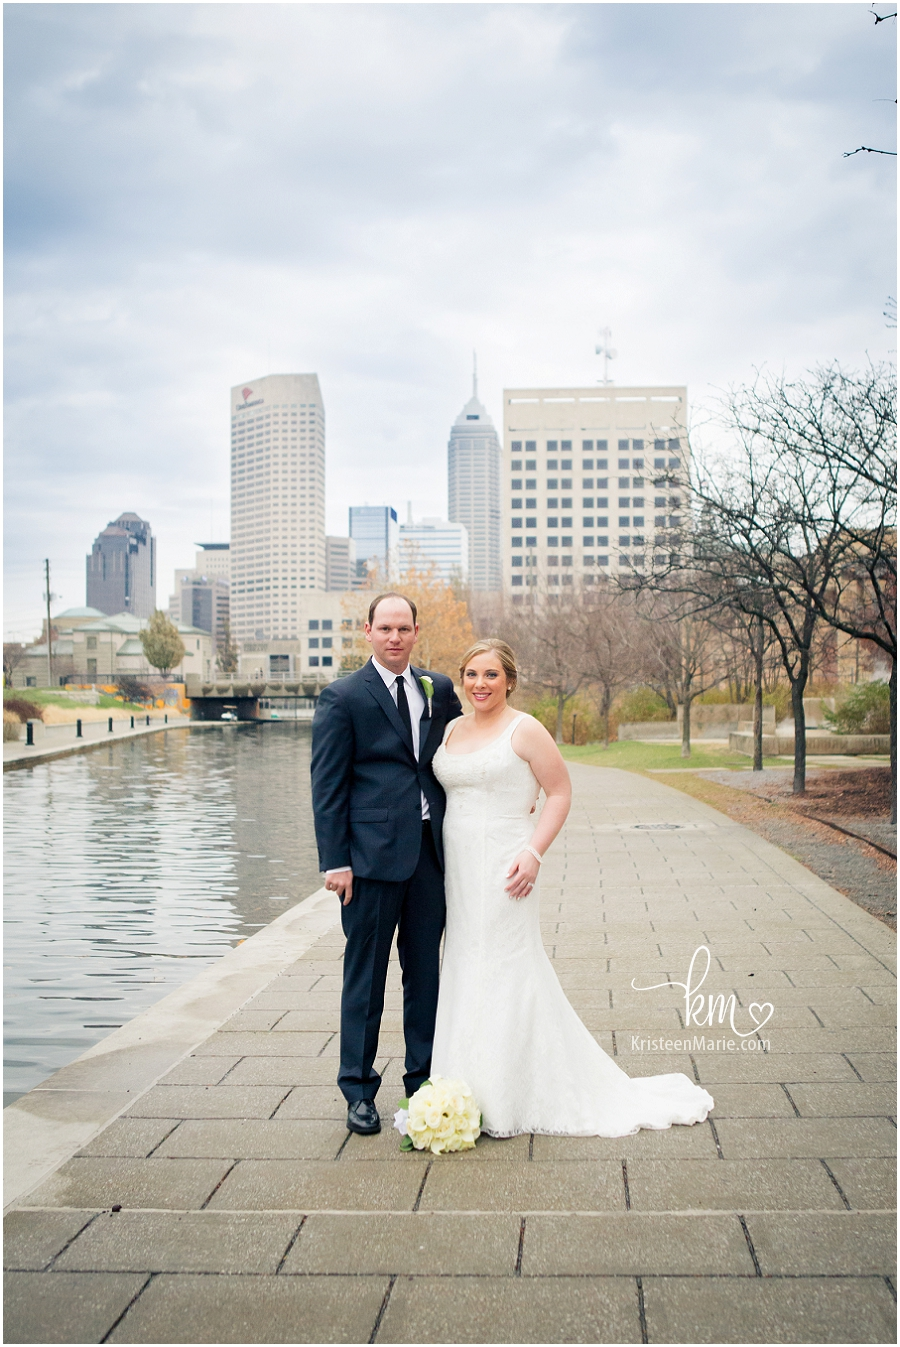 Downtown Indianapolis Wedding Photography - City Backdrop